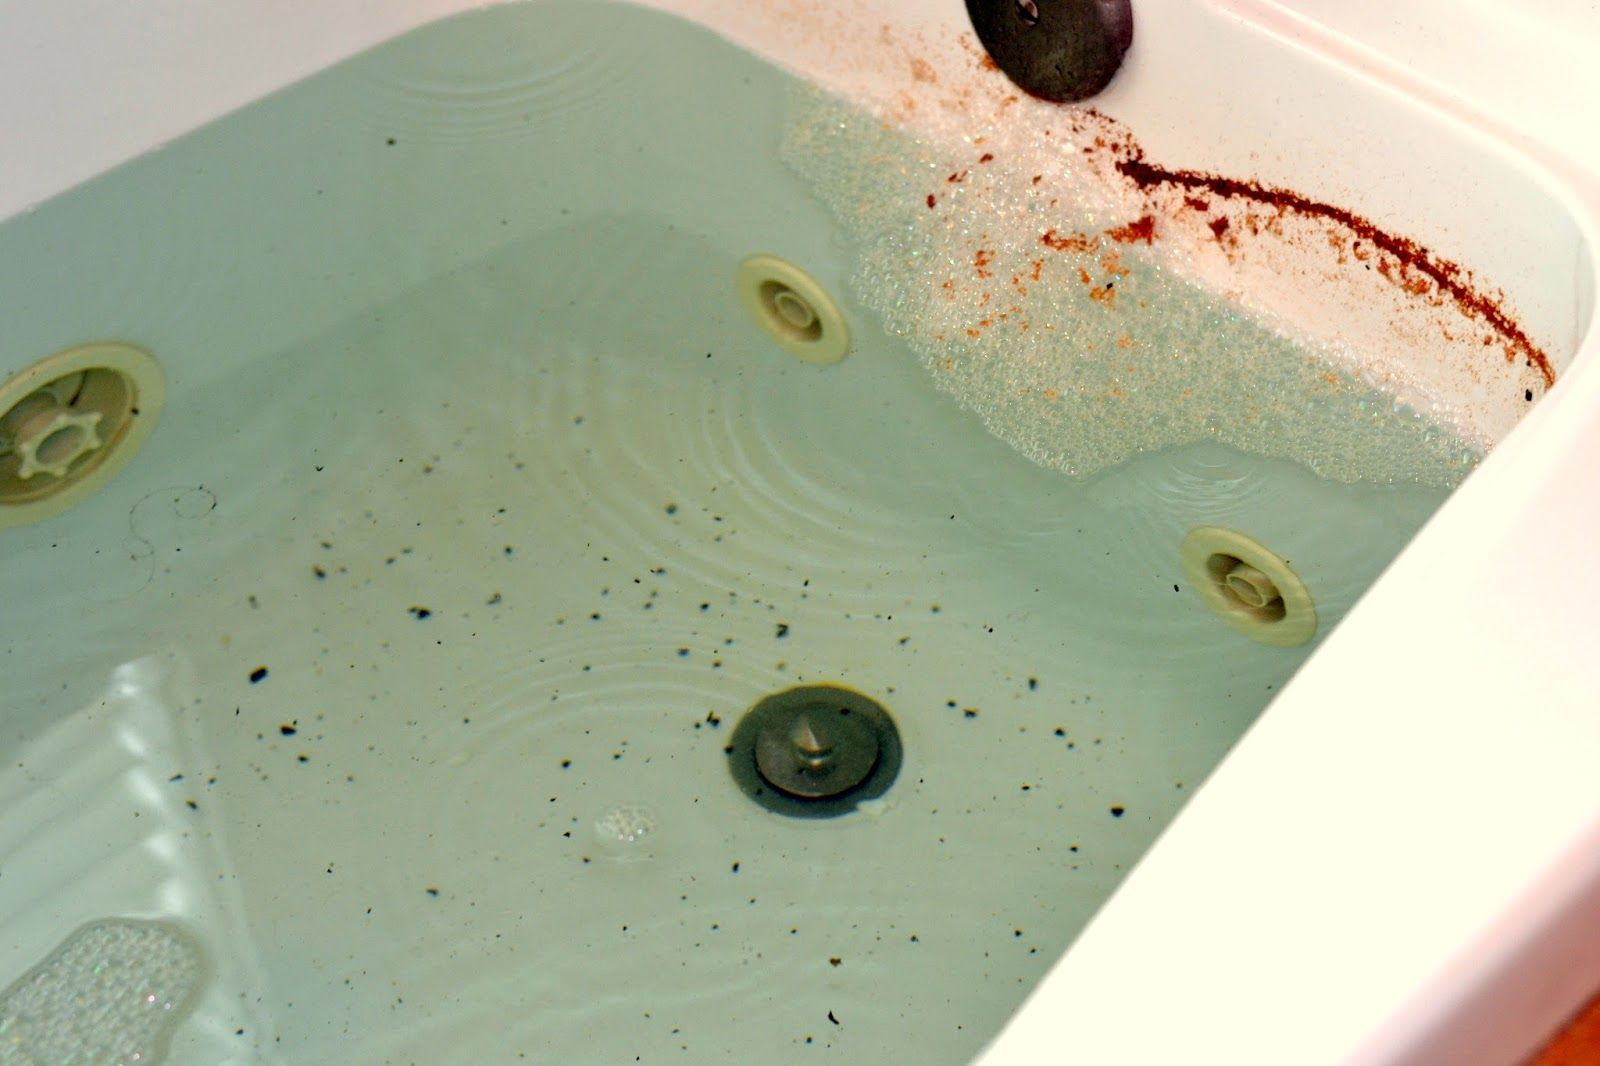 How To Clean Your Jetted Jacuzzi Tub With Bleach And 20 Mule Team